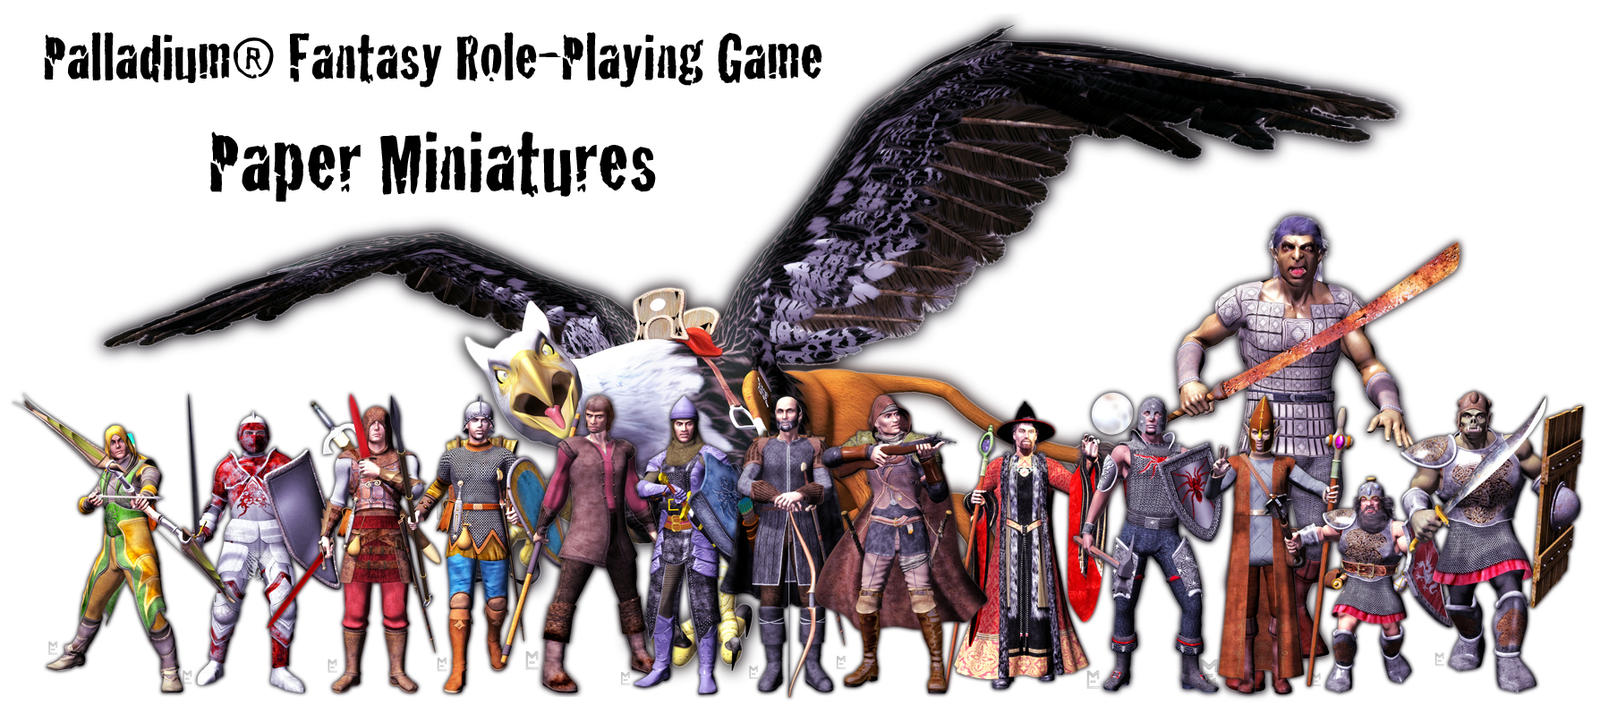 Palladium Fantasy RPG Miniatures Teaser by MADMANMIKE